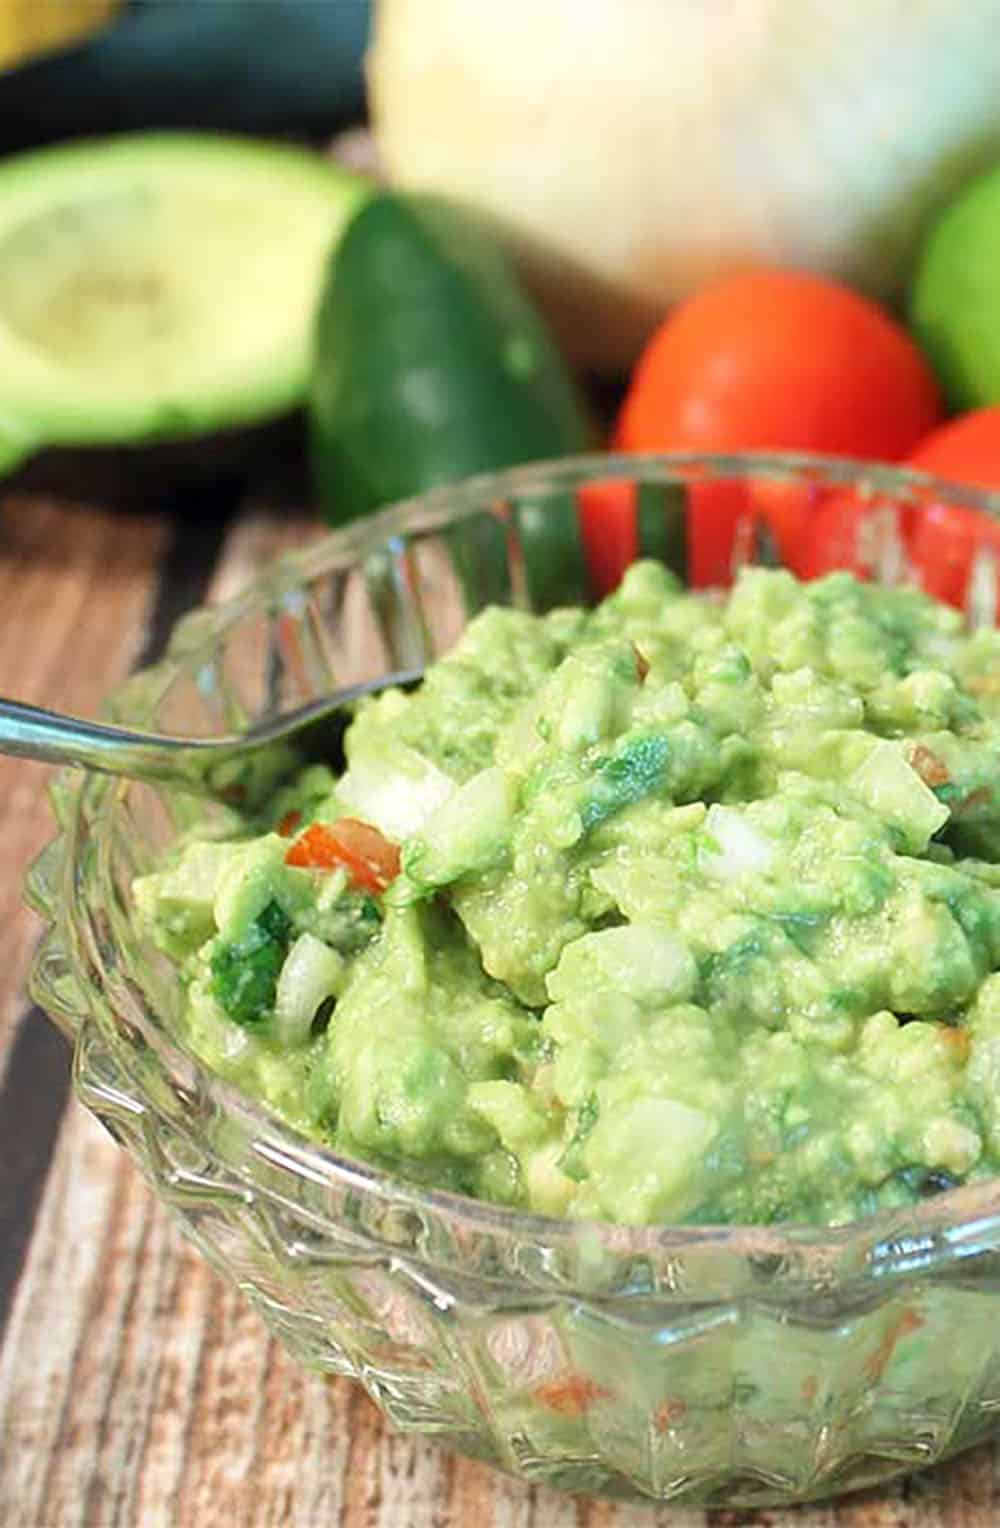 Bowl of guacamole closeup with ingredients in background.